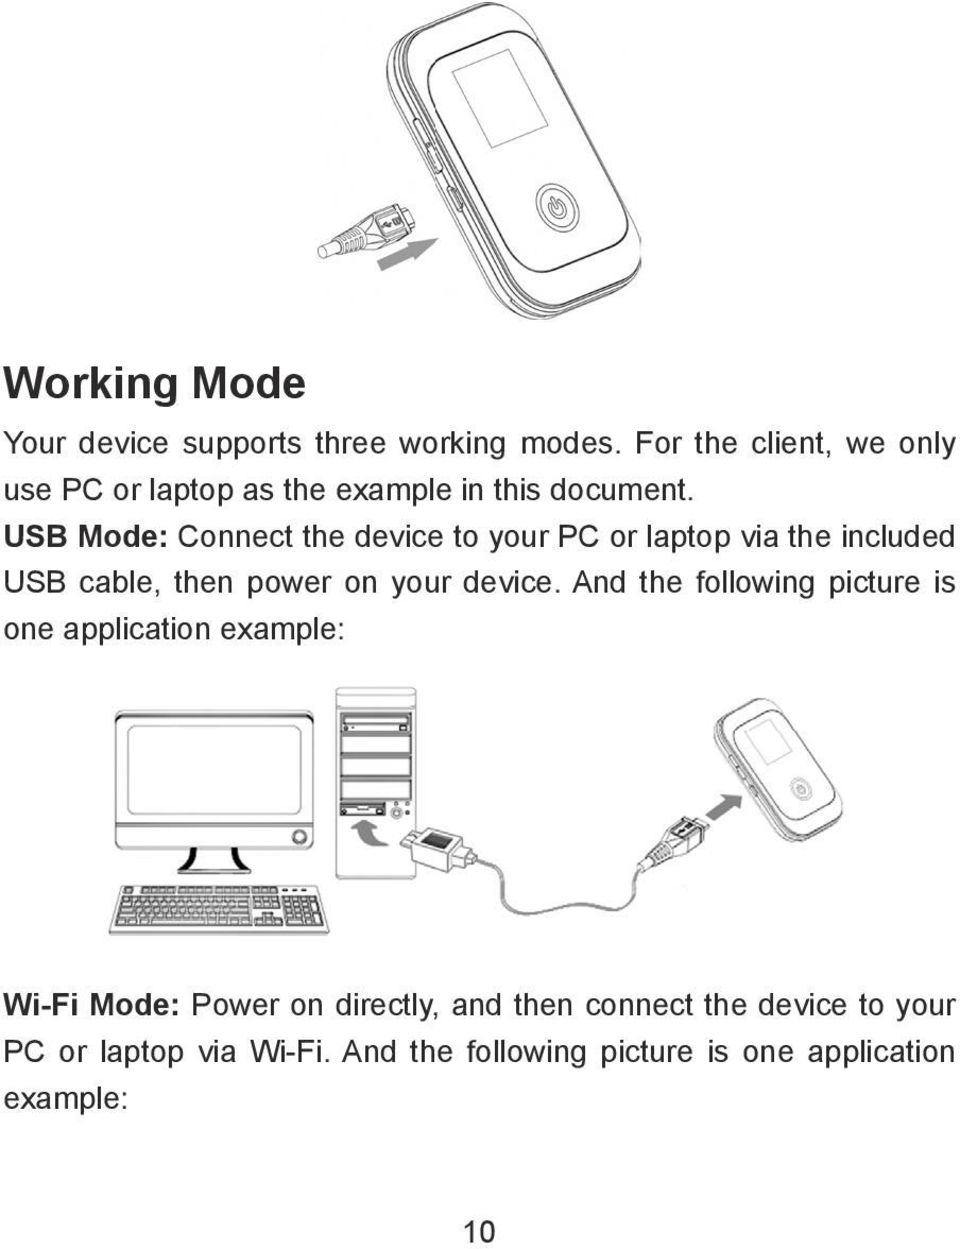 USB Mode: Connect the device to your PC or laptop via the included USB cable, then power on your device.